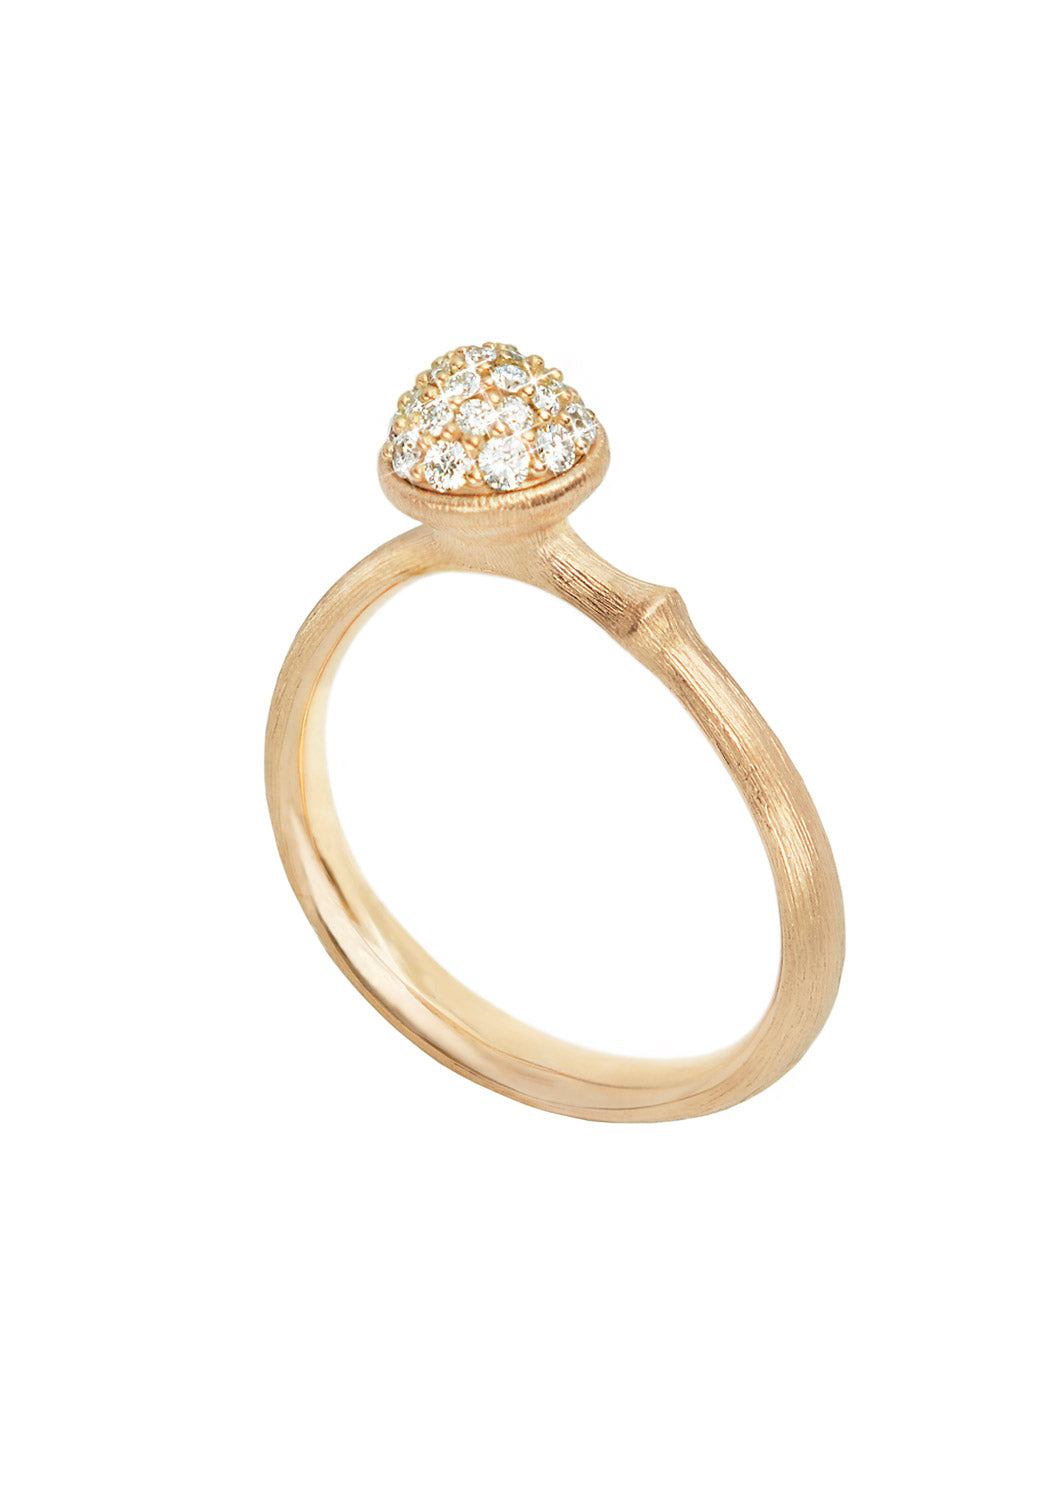 OLE LYNGGAARD Lotus Diamond Ring